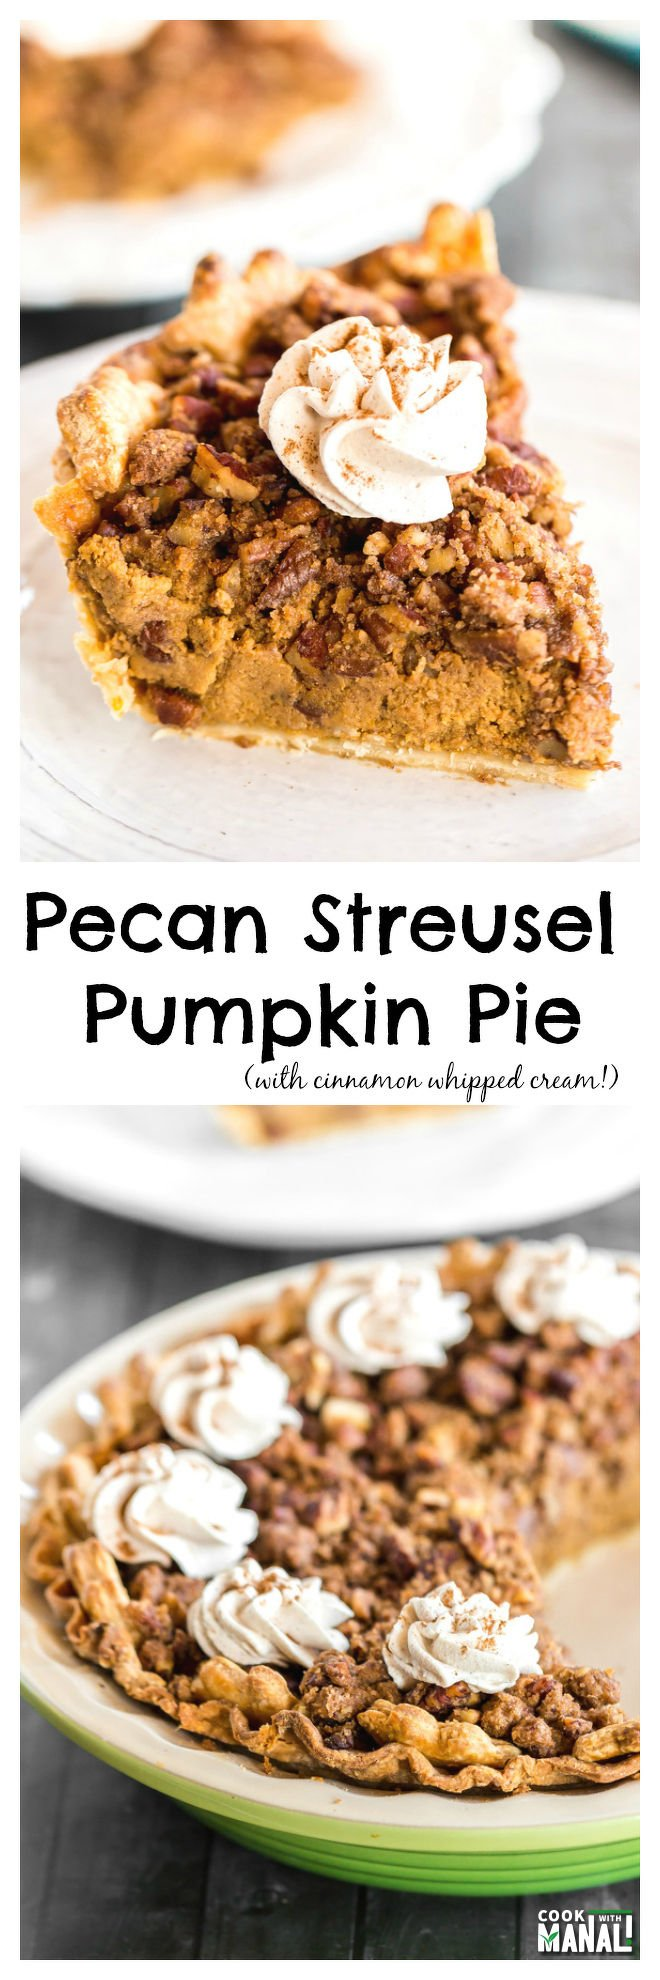 Pecan Streusel Pumpkin Pie Collage